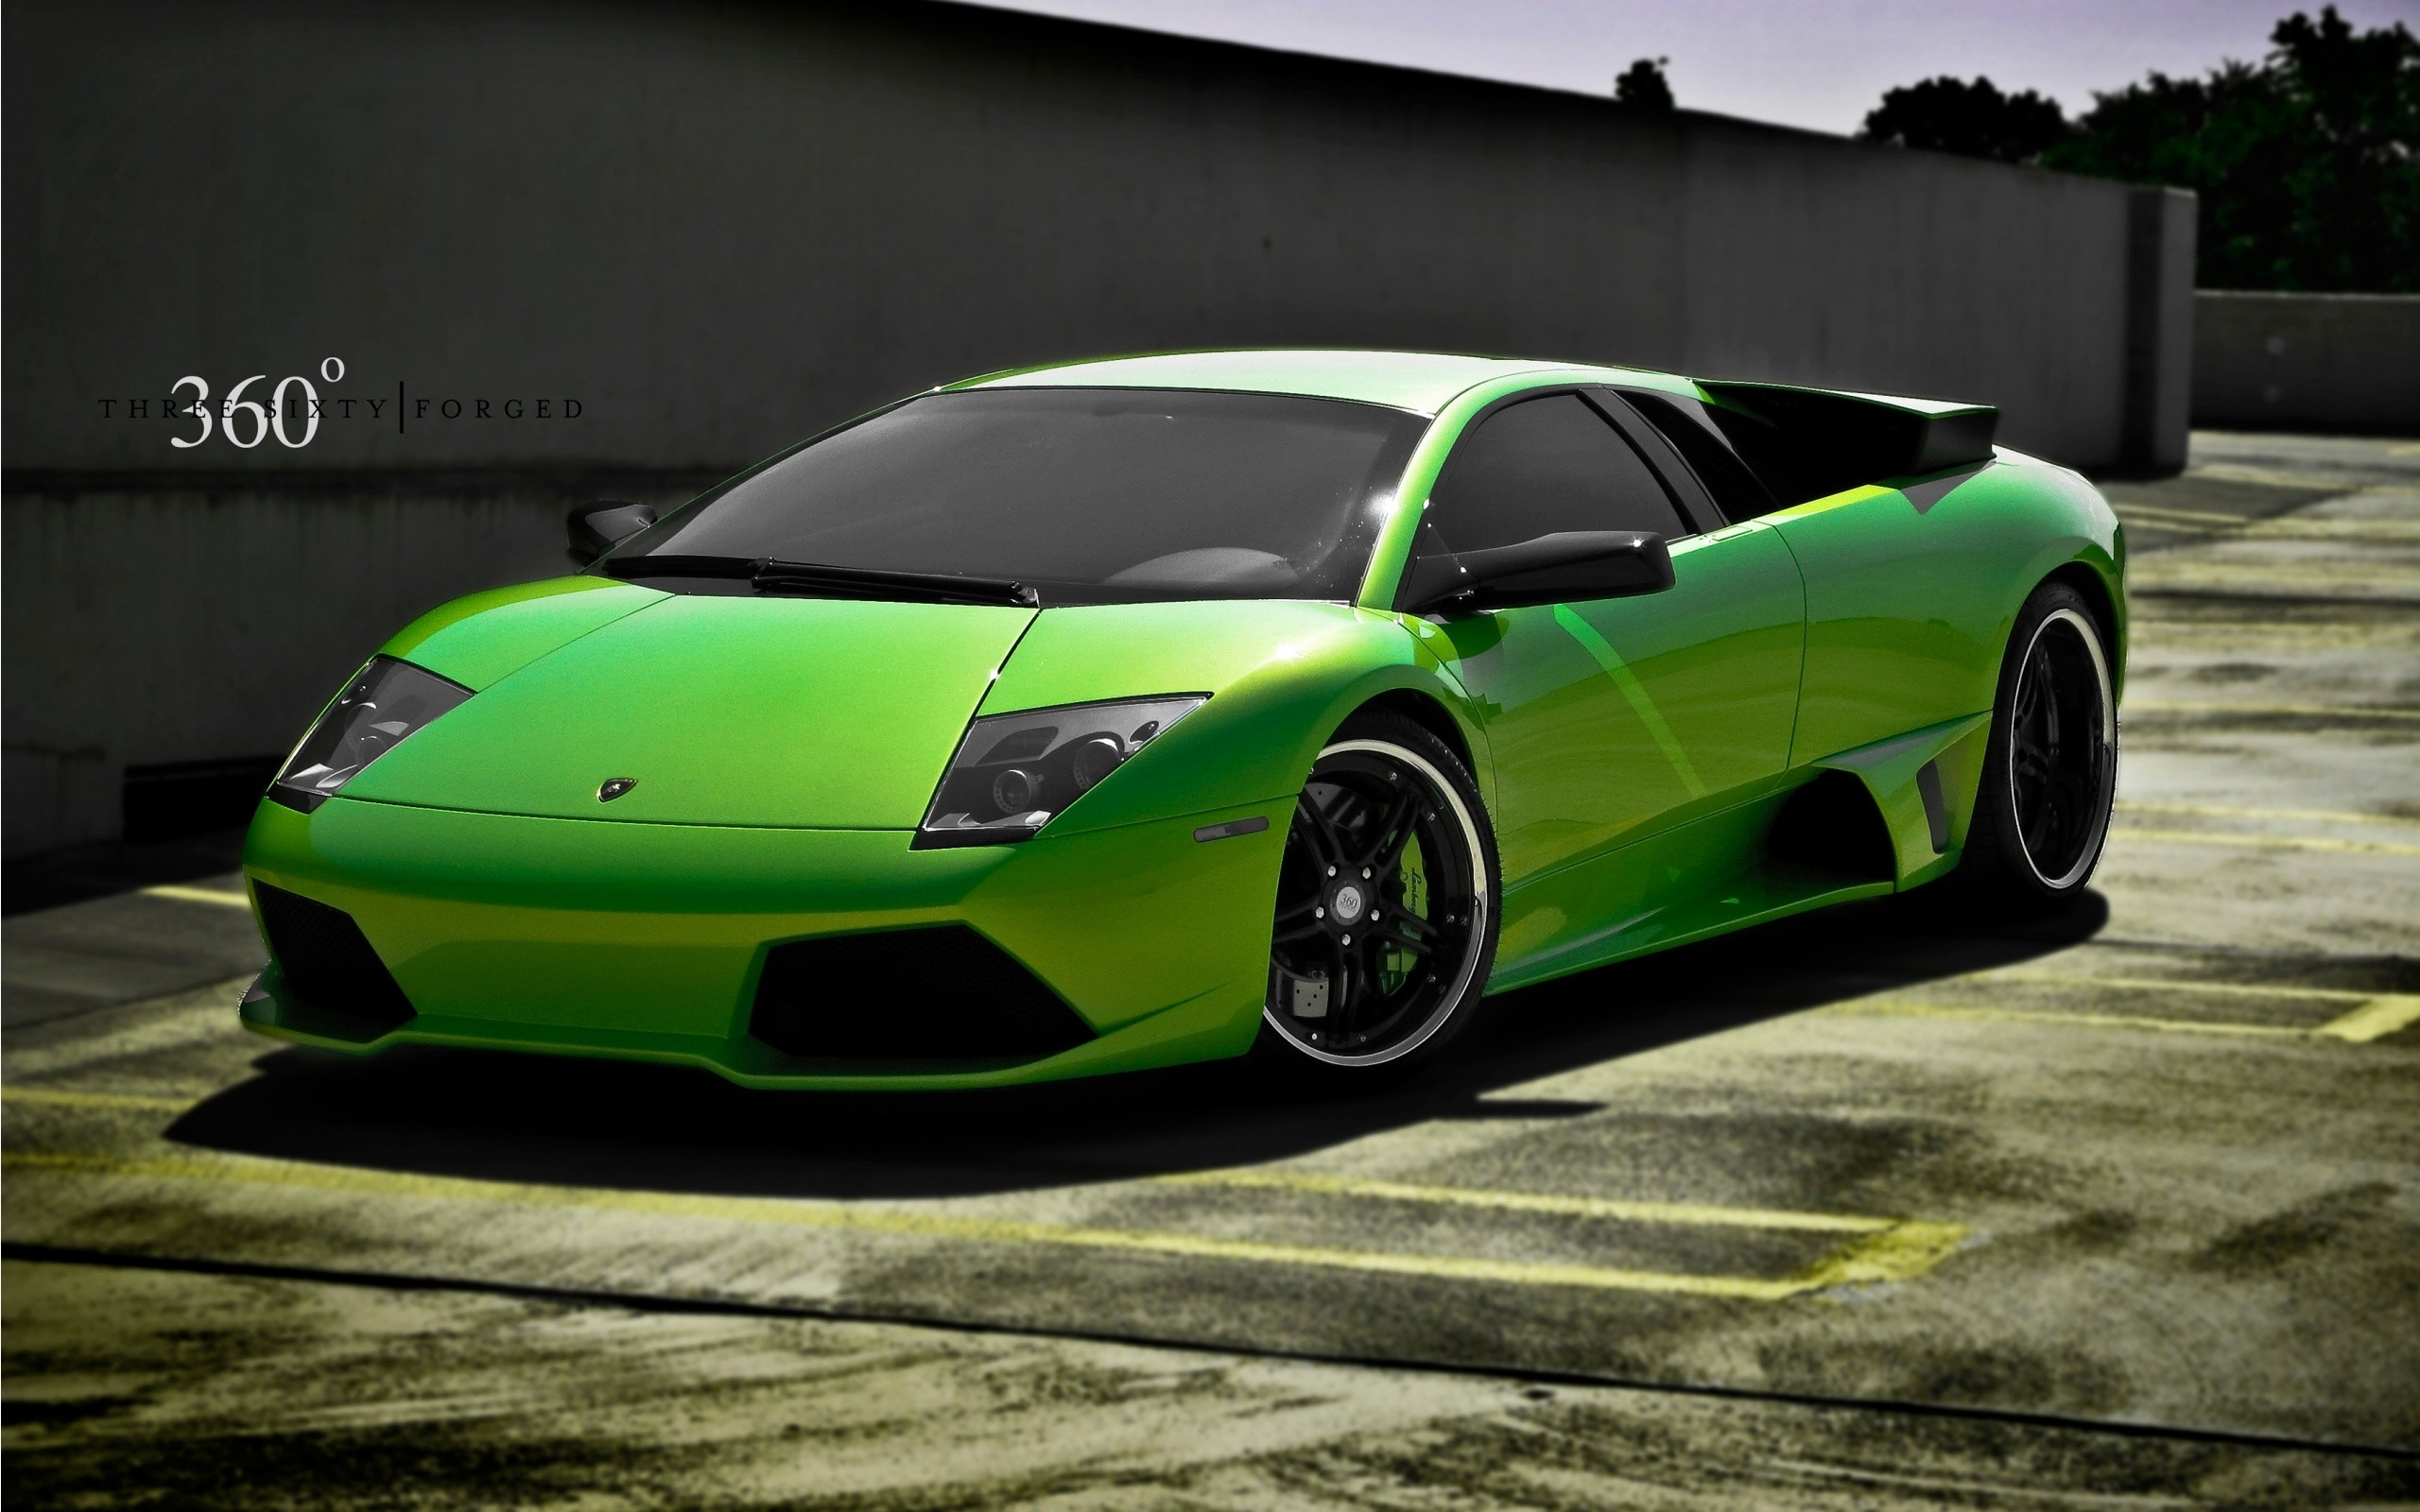 Cars Lamborghini Murcielago 360 Forged Fresh New Hd Wallpaper